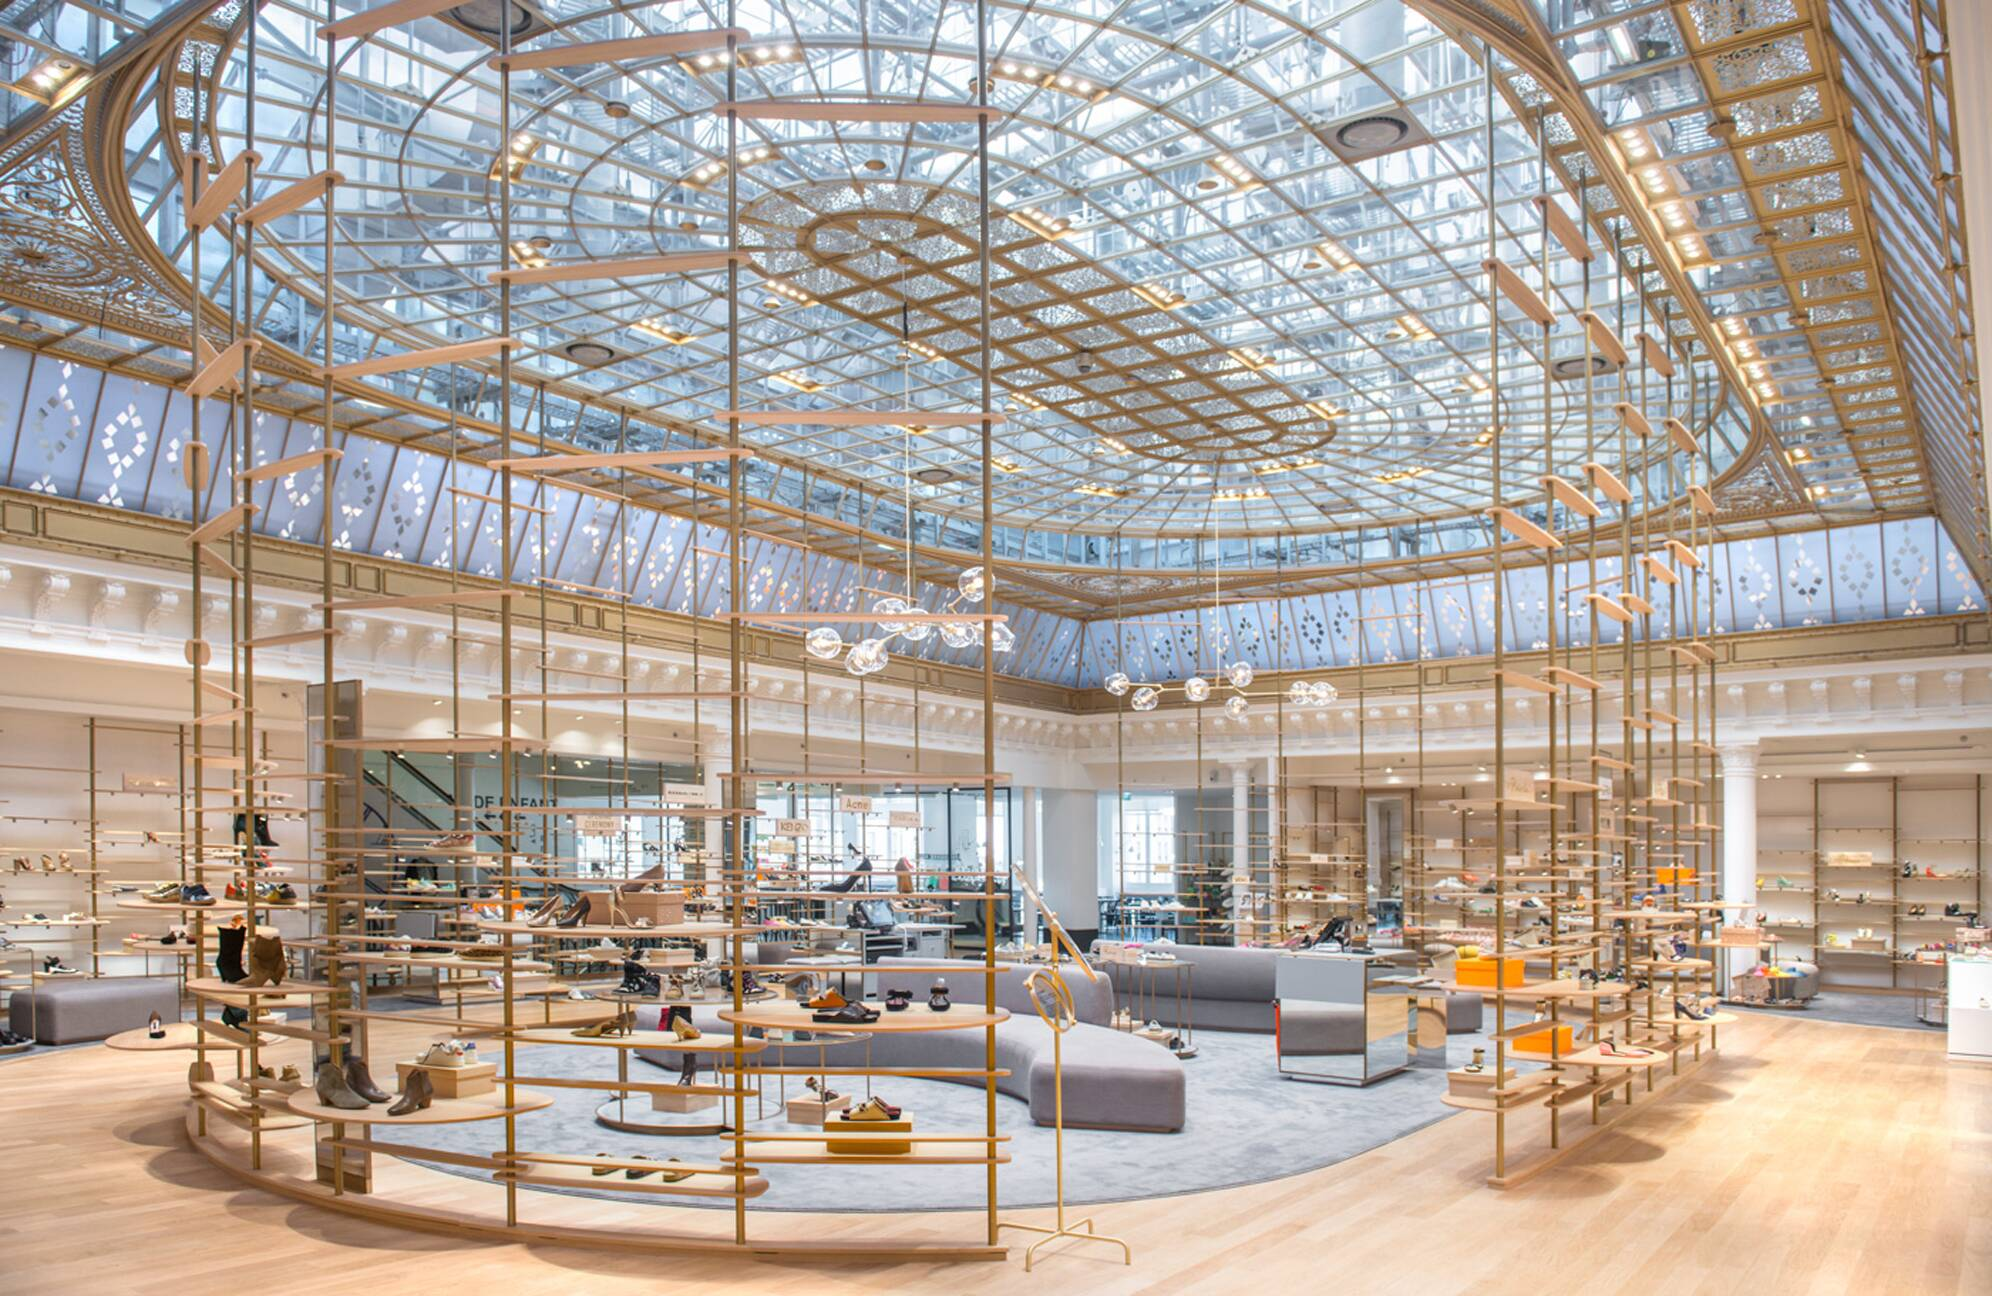 Le bon march parisian department store selective for Dep design interieur